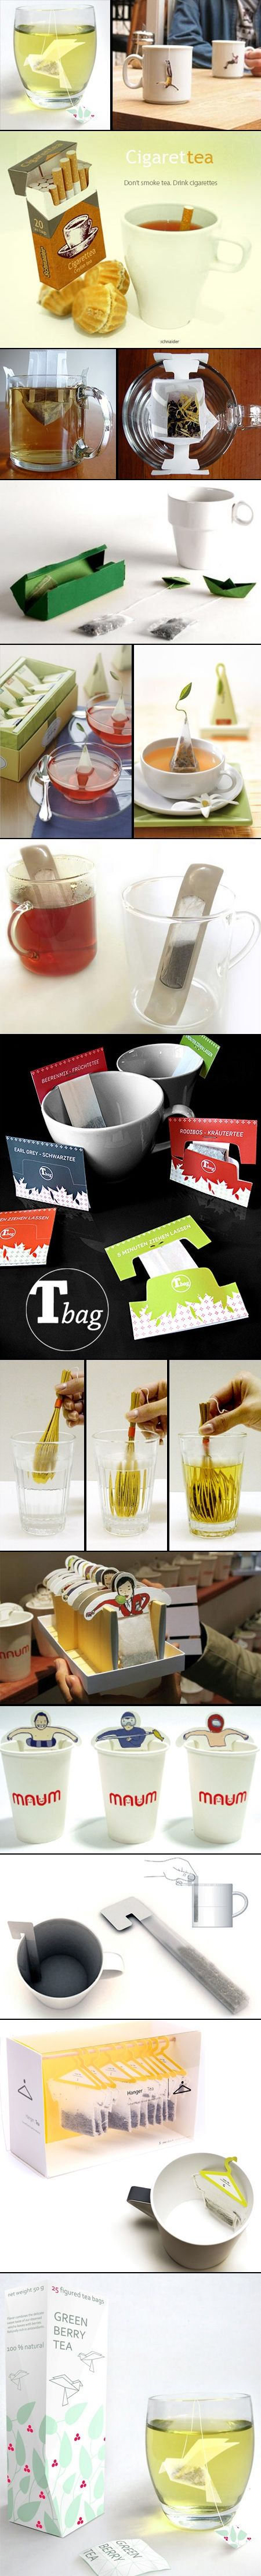 Tea Packaging - clever minds.